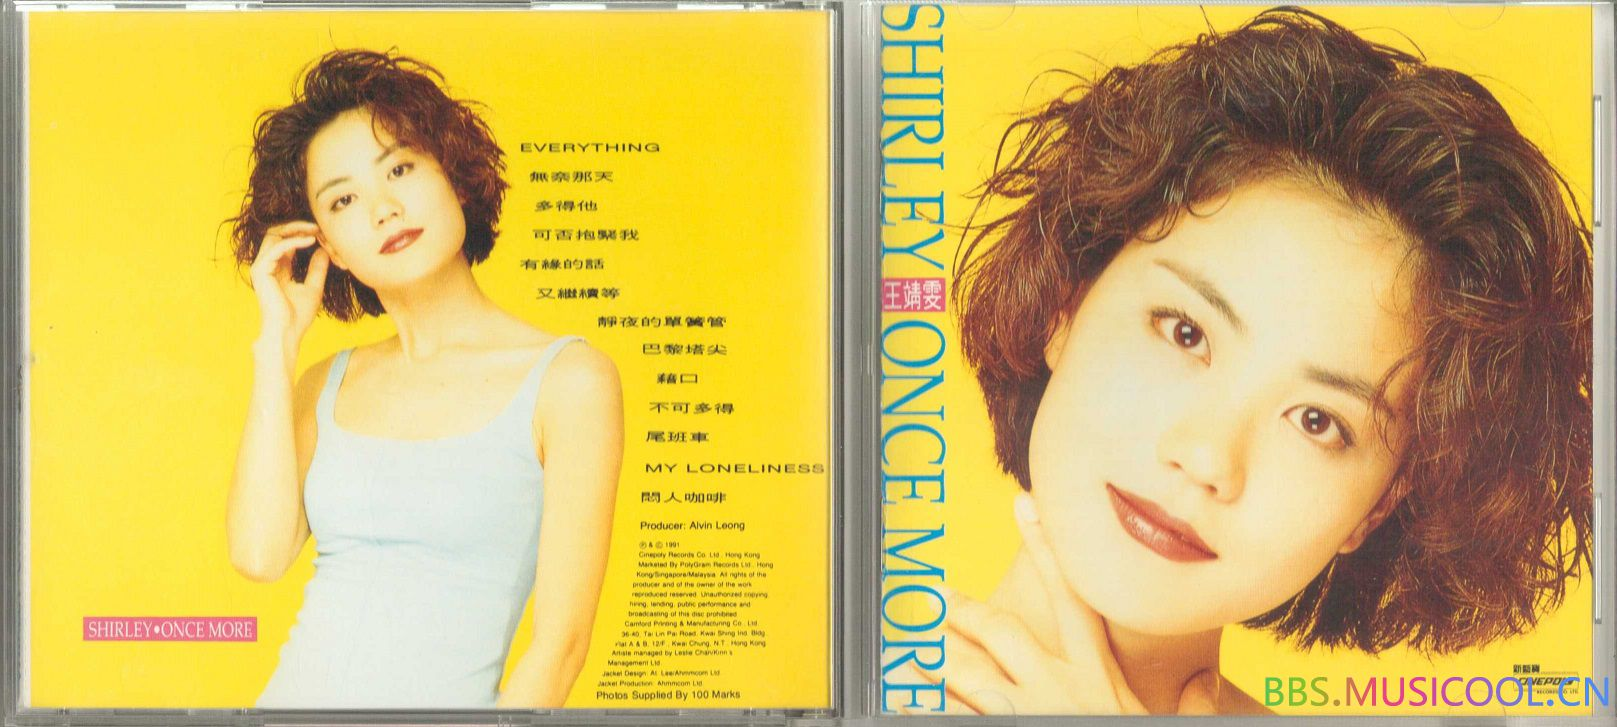 王靖雯 - SHIRLEY ONCE MORE(1992精选)1.jpg